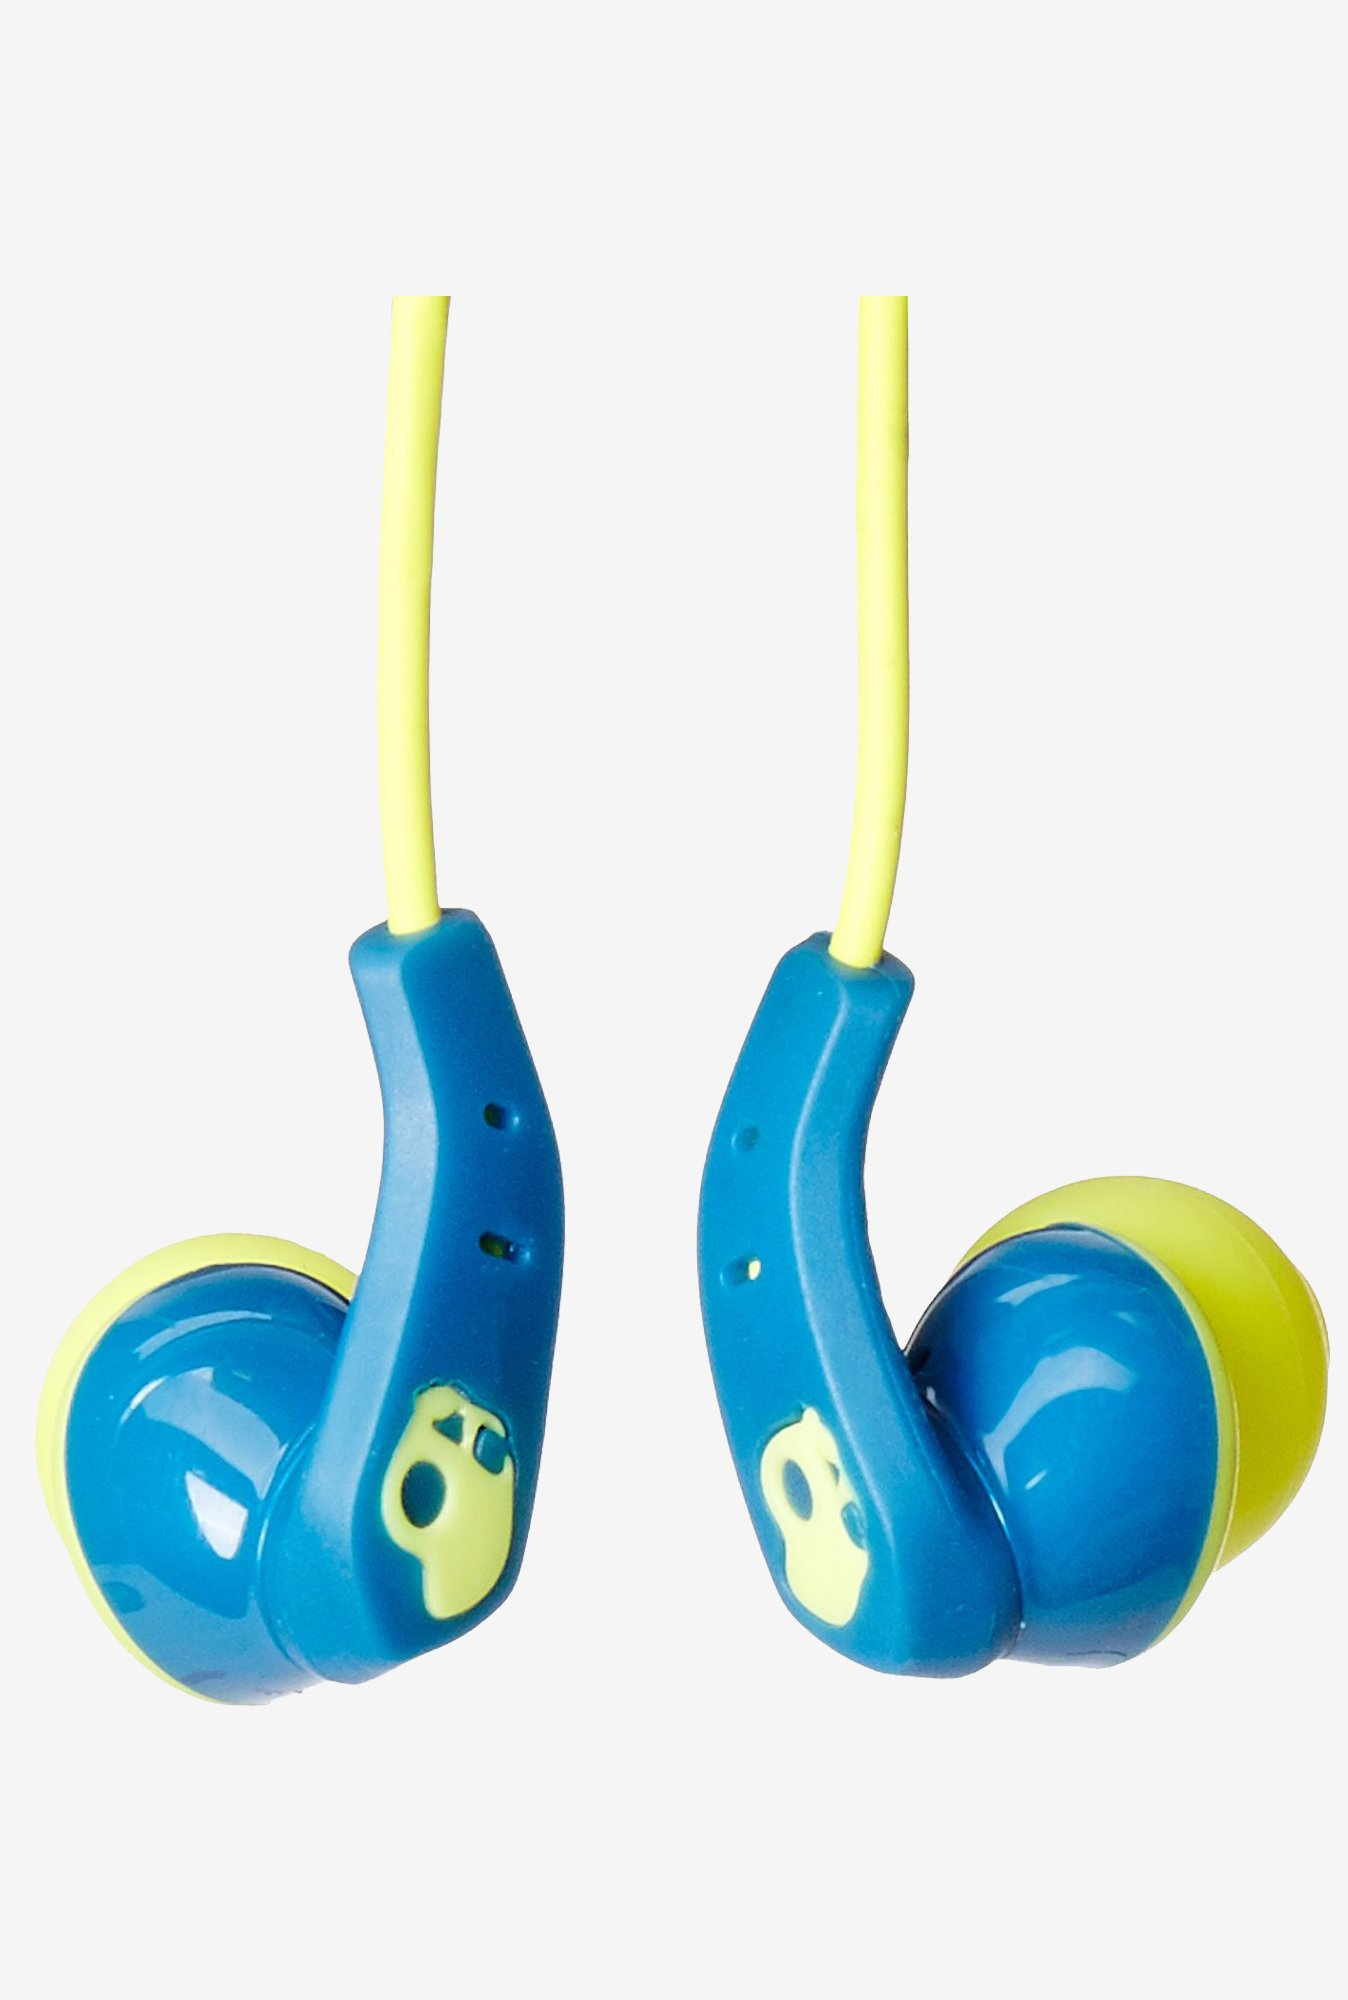 Skullcandy S2CDJY-358 In the Ear Sport Earbuds (Yellow)